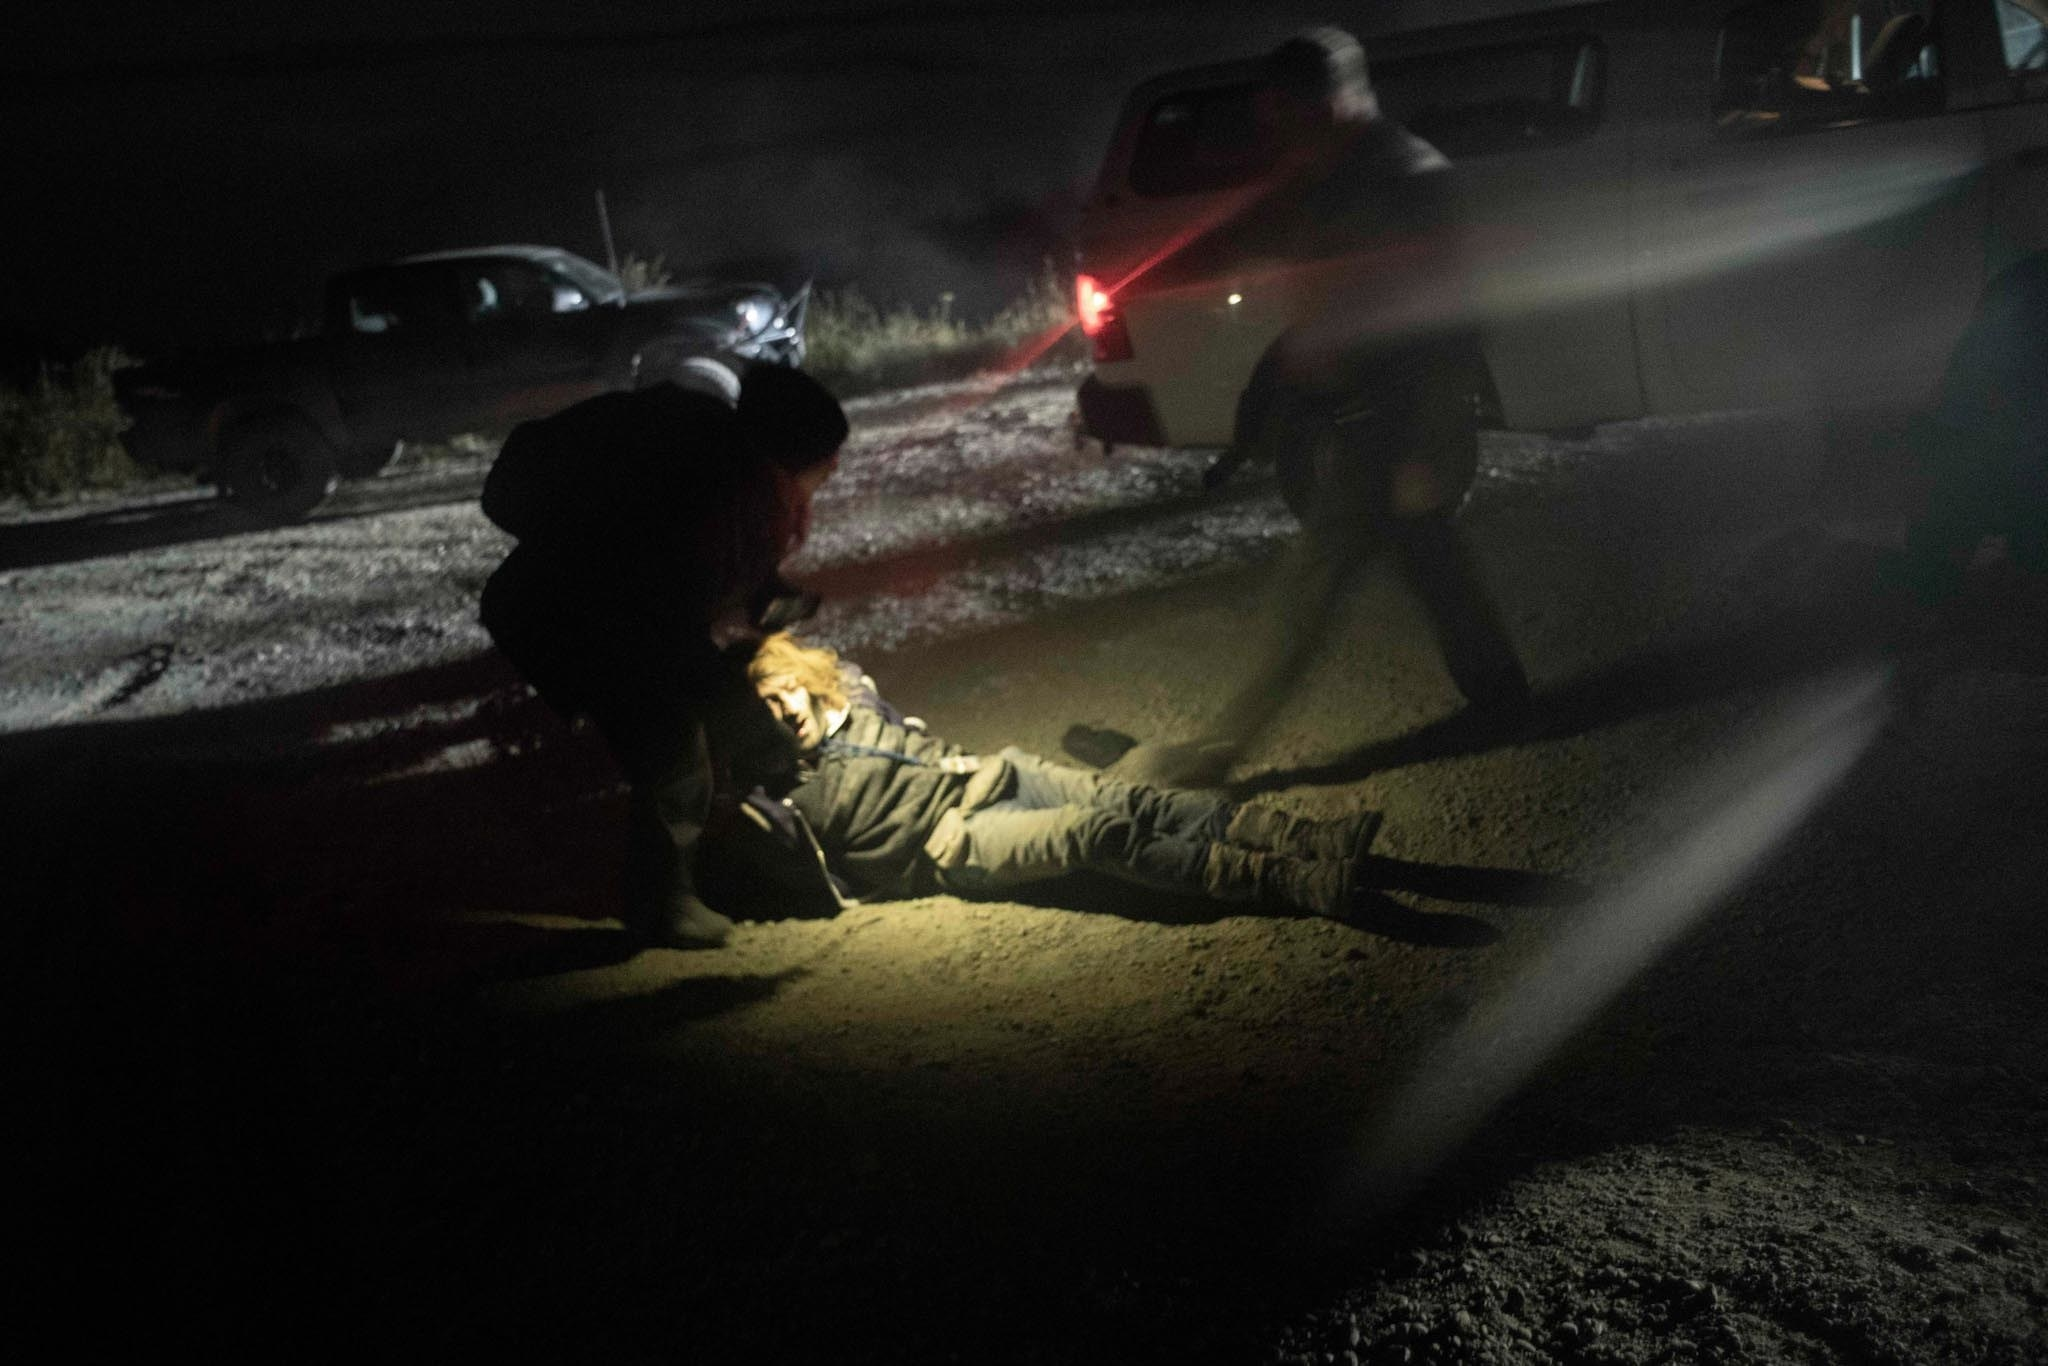 An activist is dragged on the ground by another activist as the cops approach